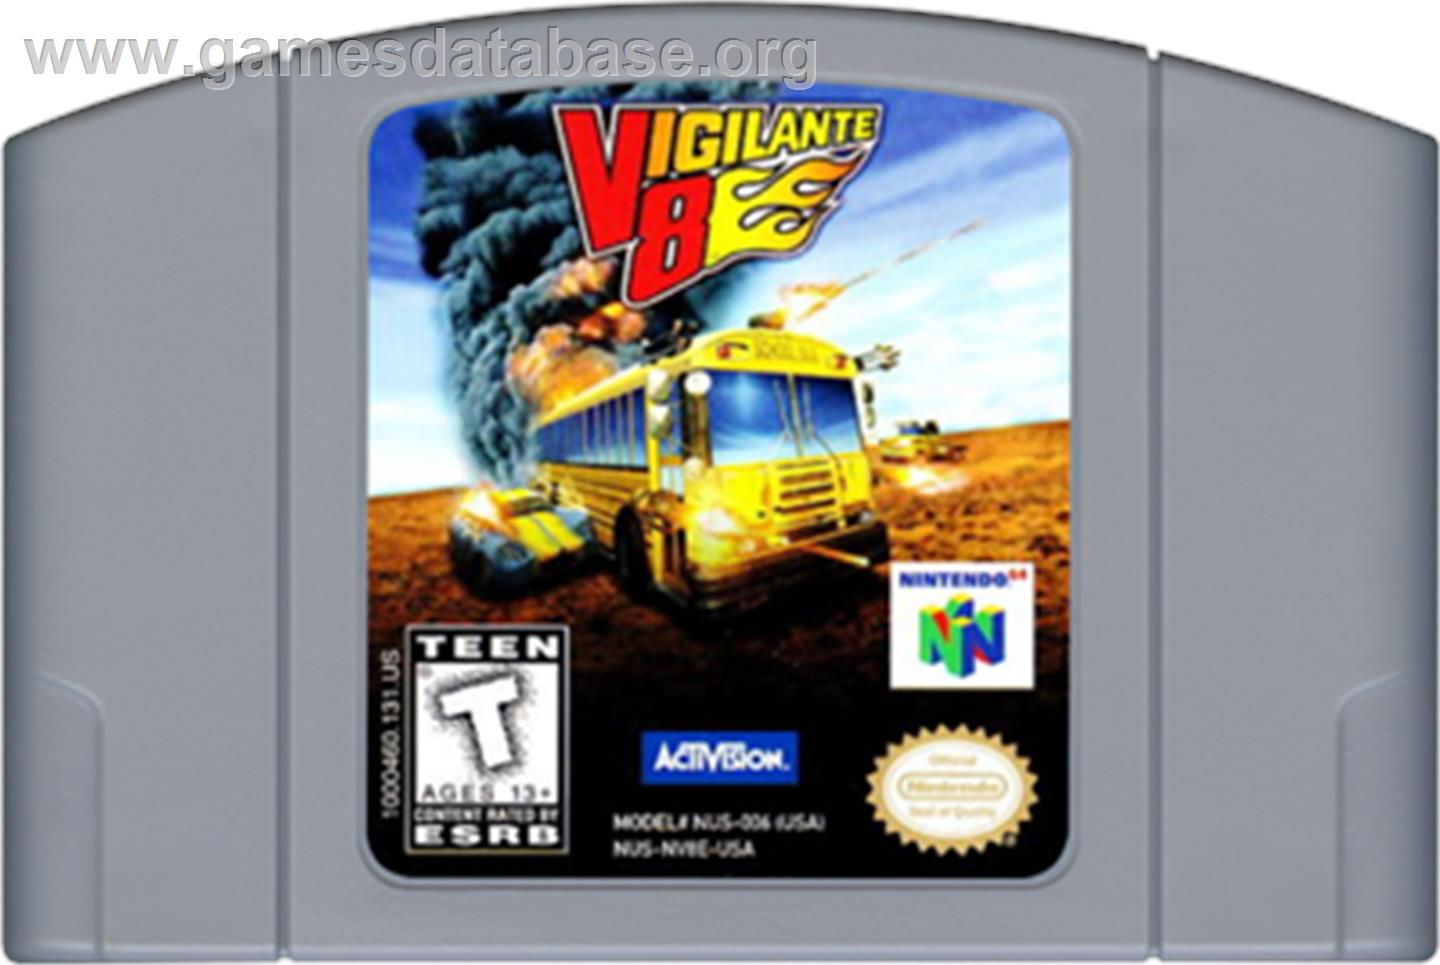 Vigilante 8: 2nd Offense - Nintendo N64 - Artwork - Cartridge